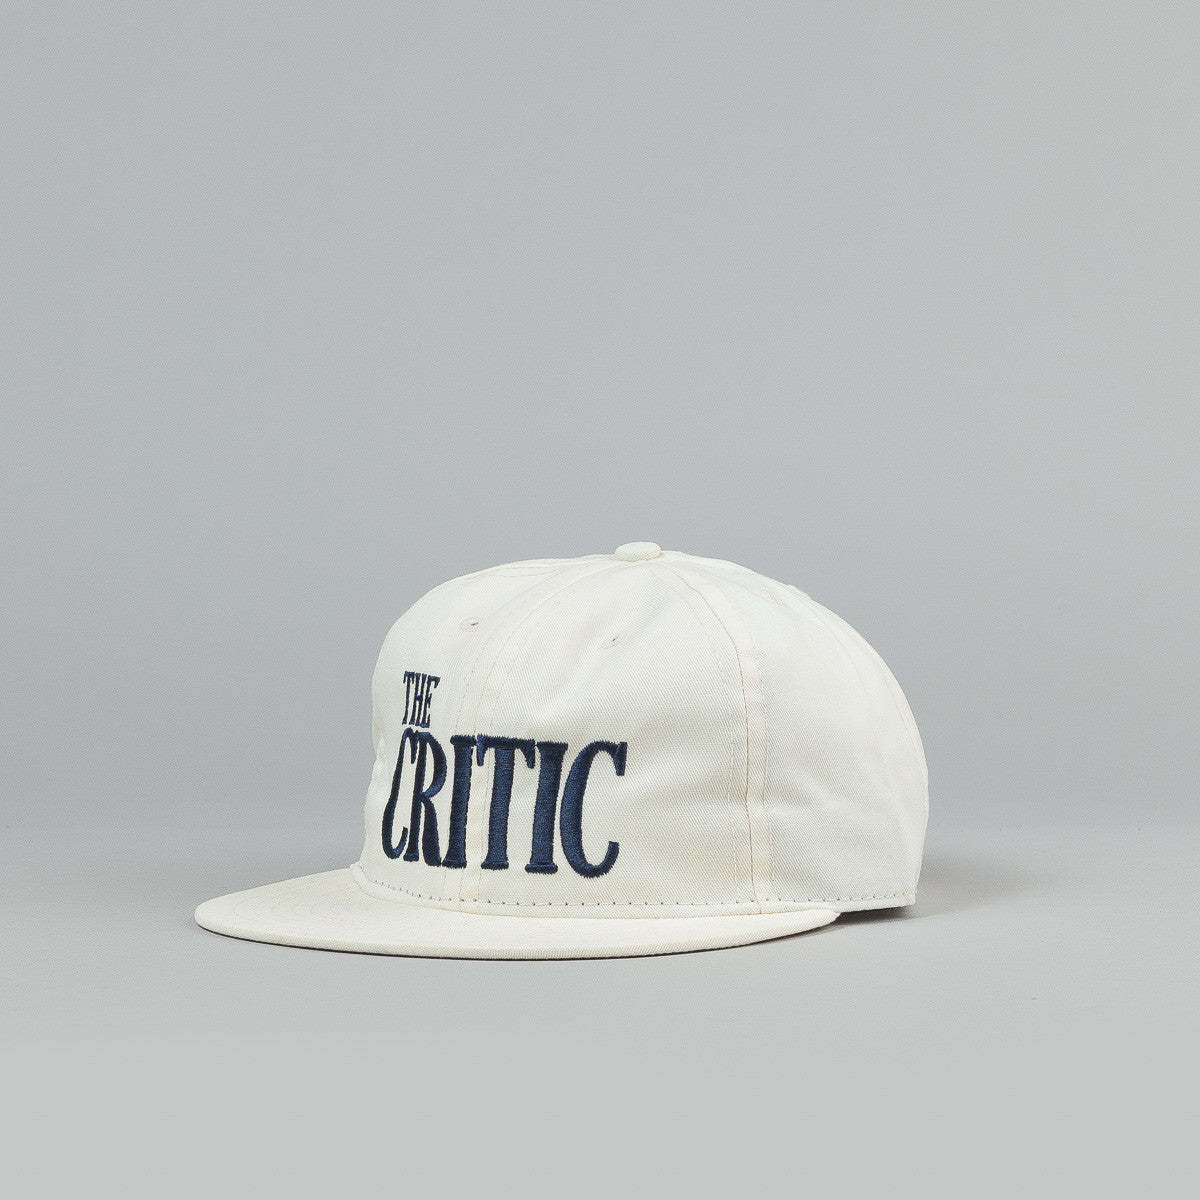 Alltimers The Critic Strapback Cap